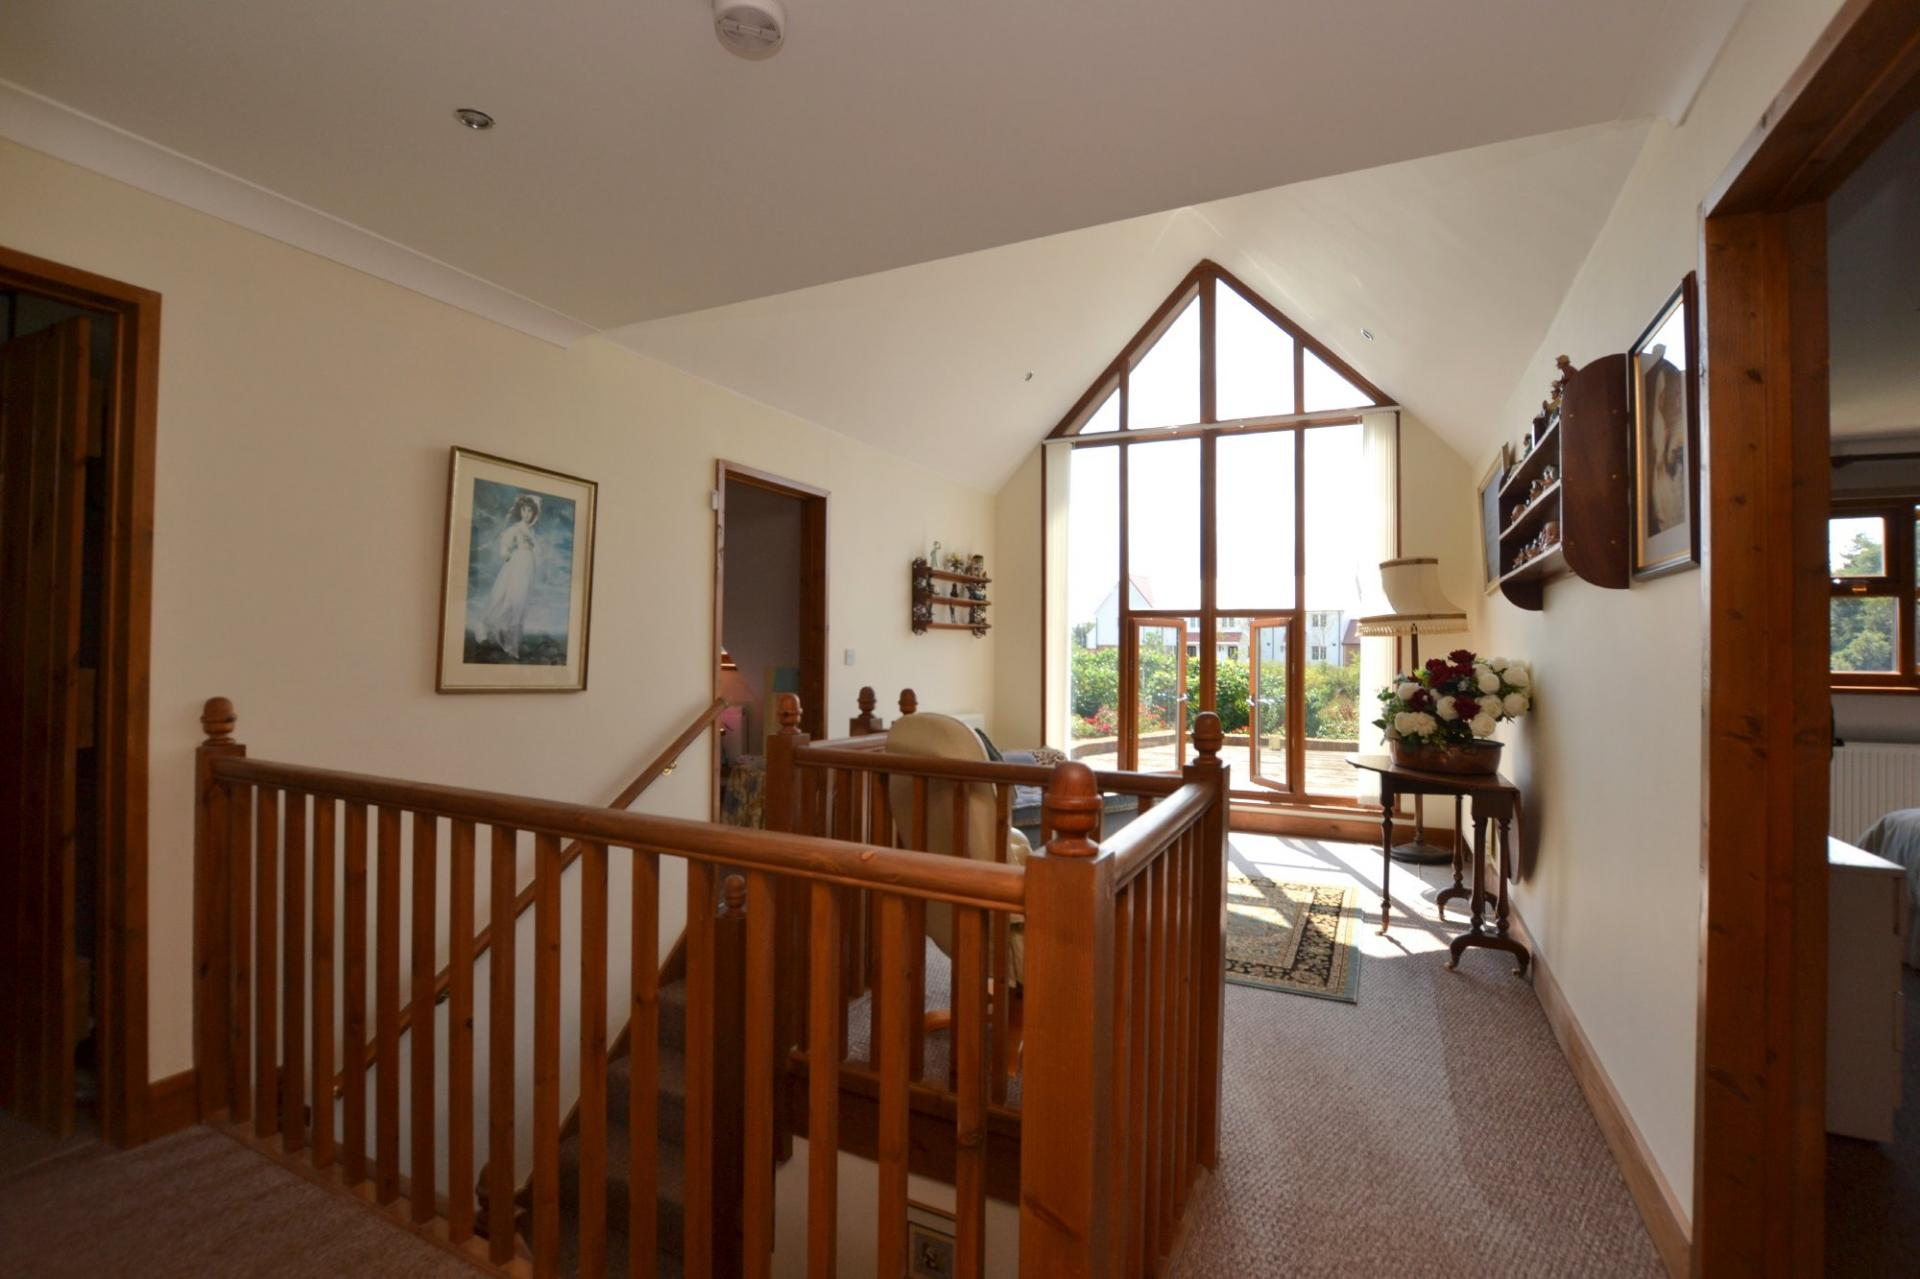 4 Bedroom Detached House For Sale In Hythe